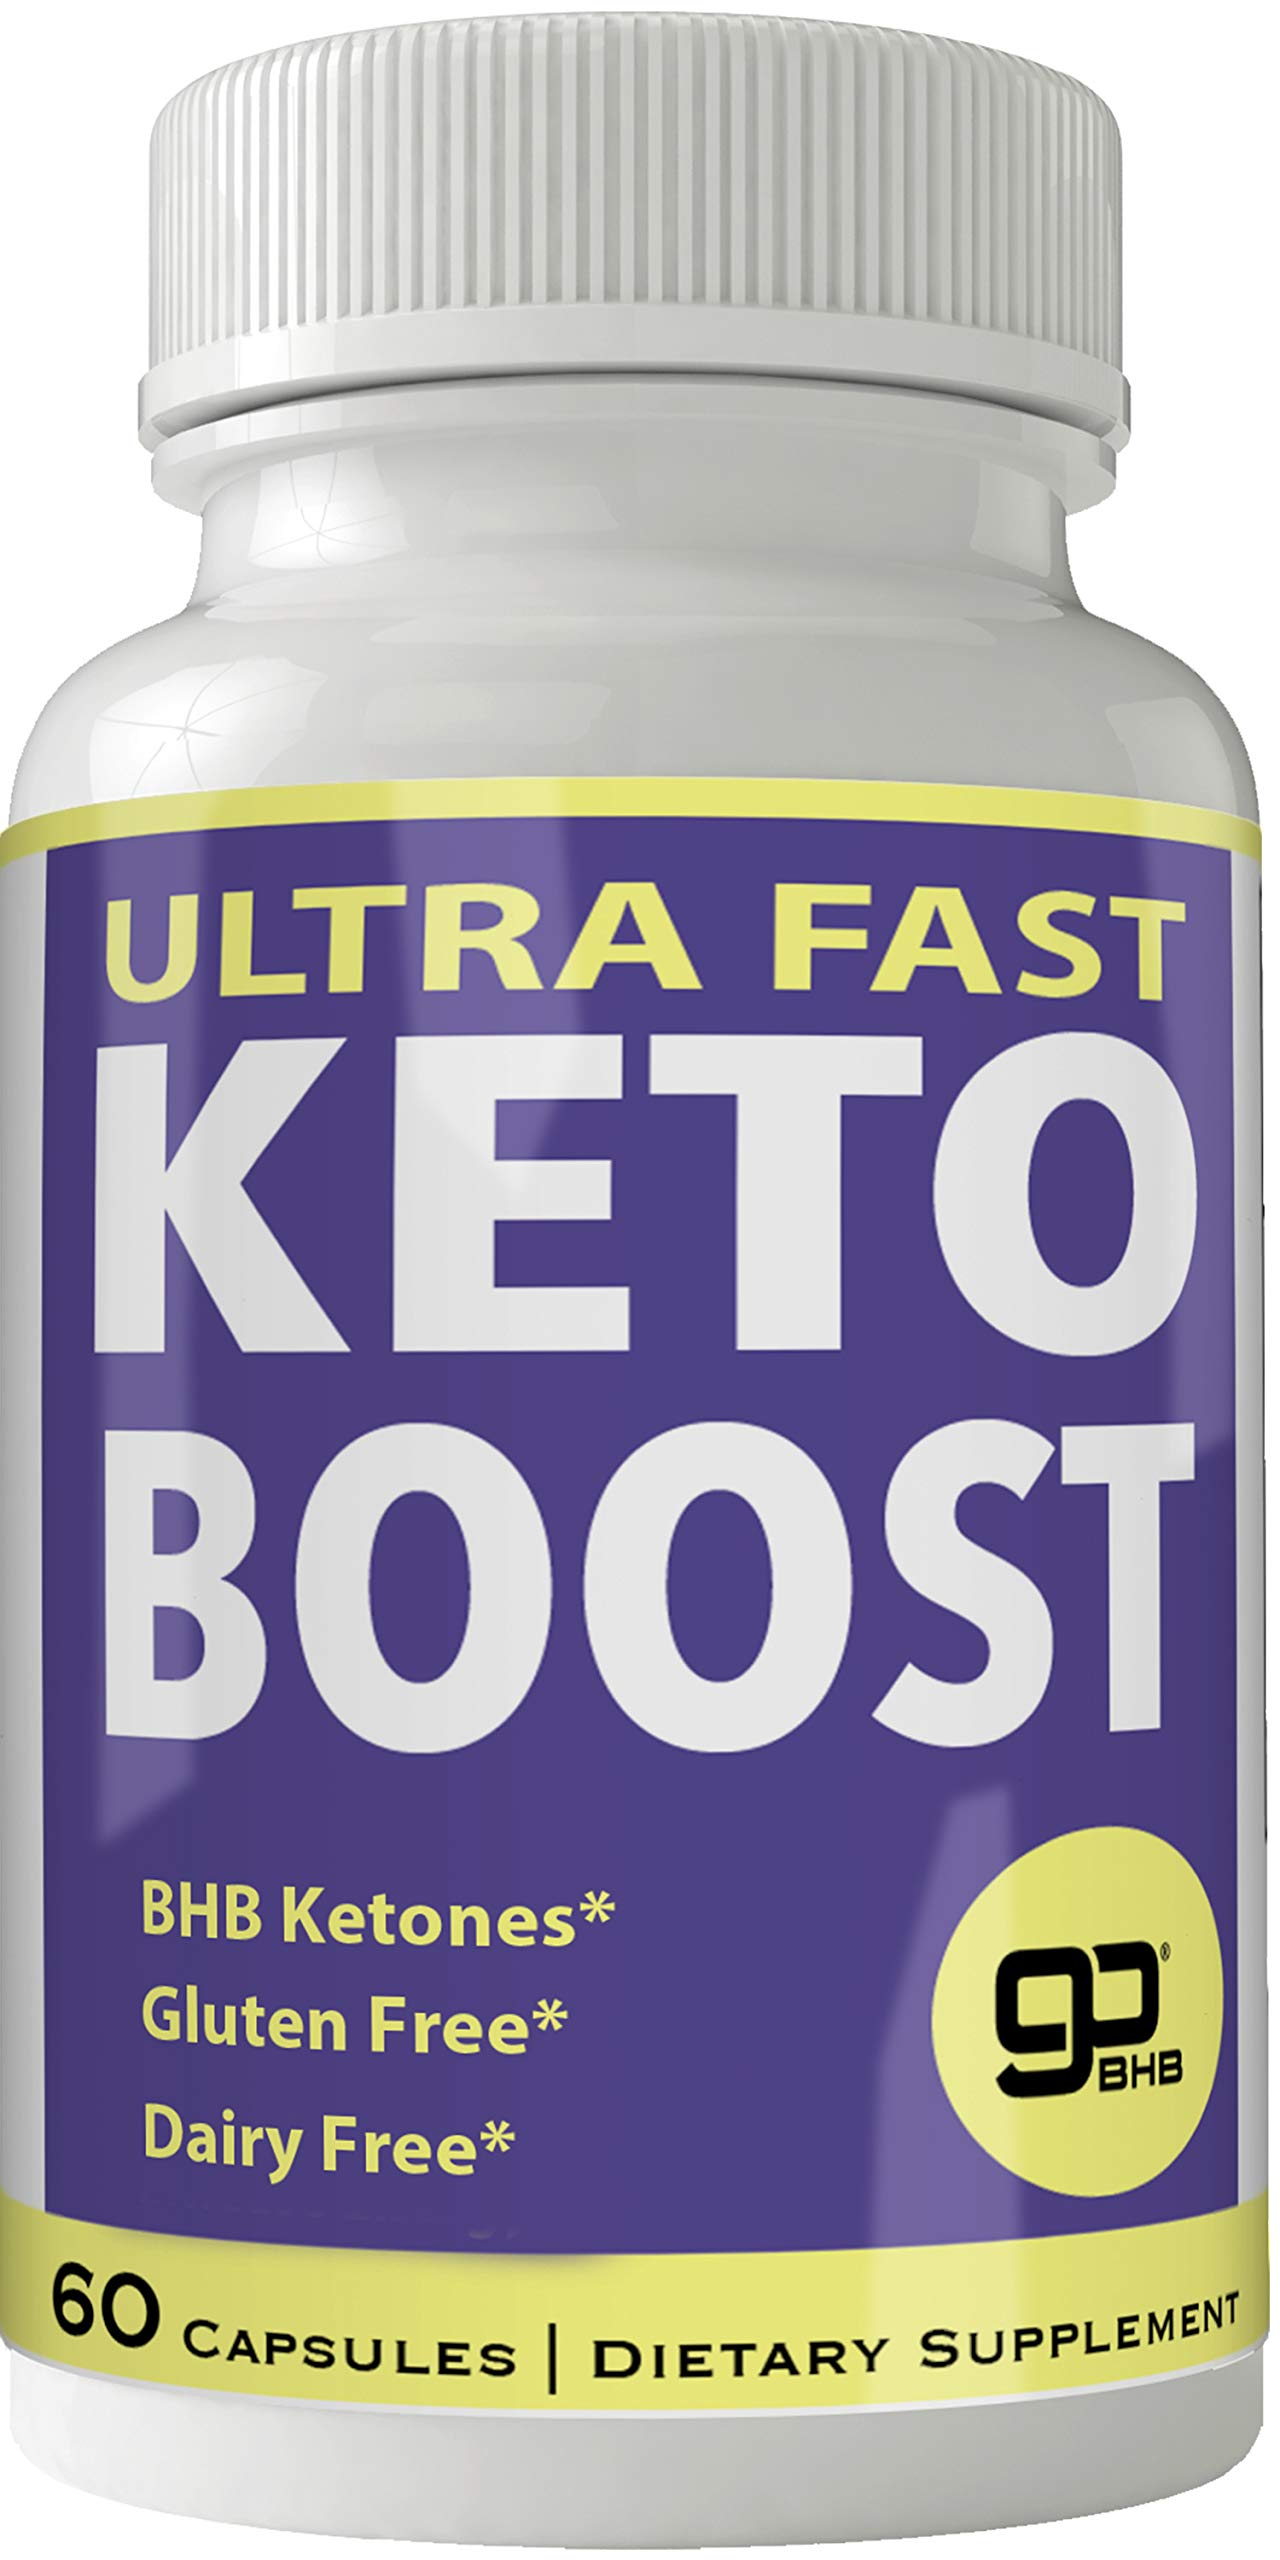 Ultra Fast Keto Boost Weight Loss Pills with Advanced Natural Ketogenic BHB Burn Fat Supplement Formula 800MG Capsules by nutra4health LLC